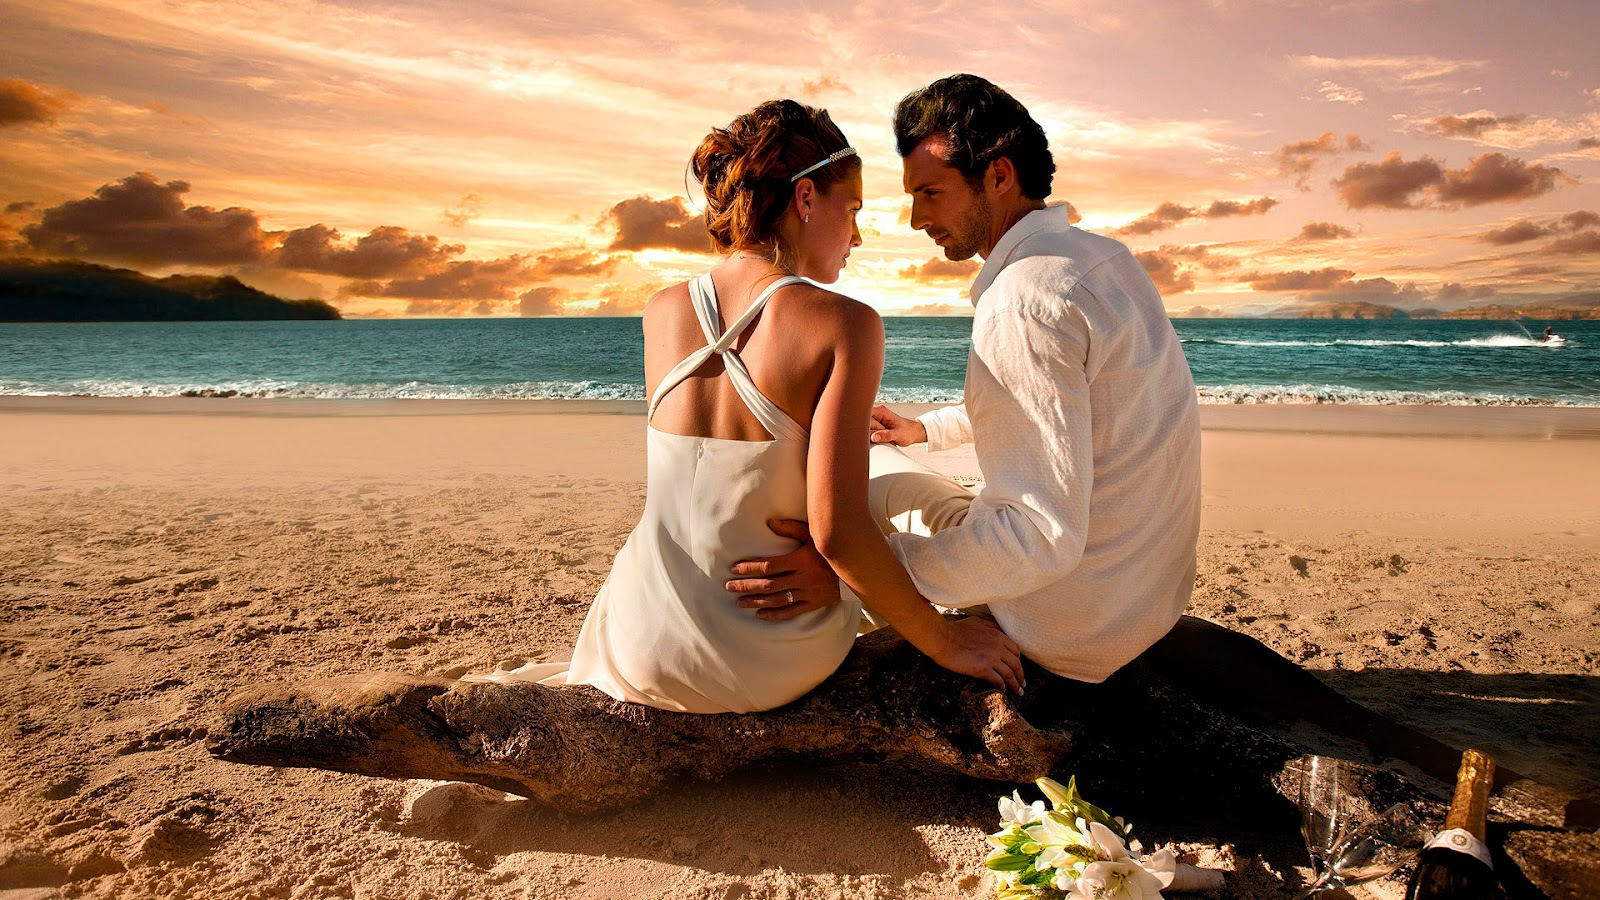 Download True Lovers 320 X 480 Wallpapers - 2153112 - Cяazy | mobile9